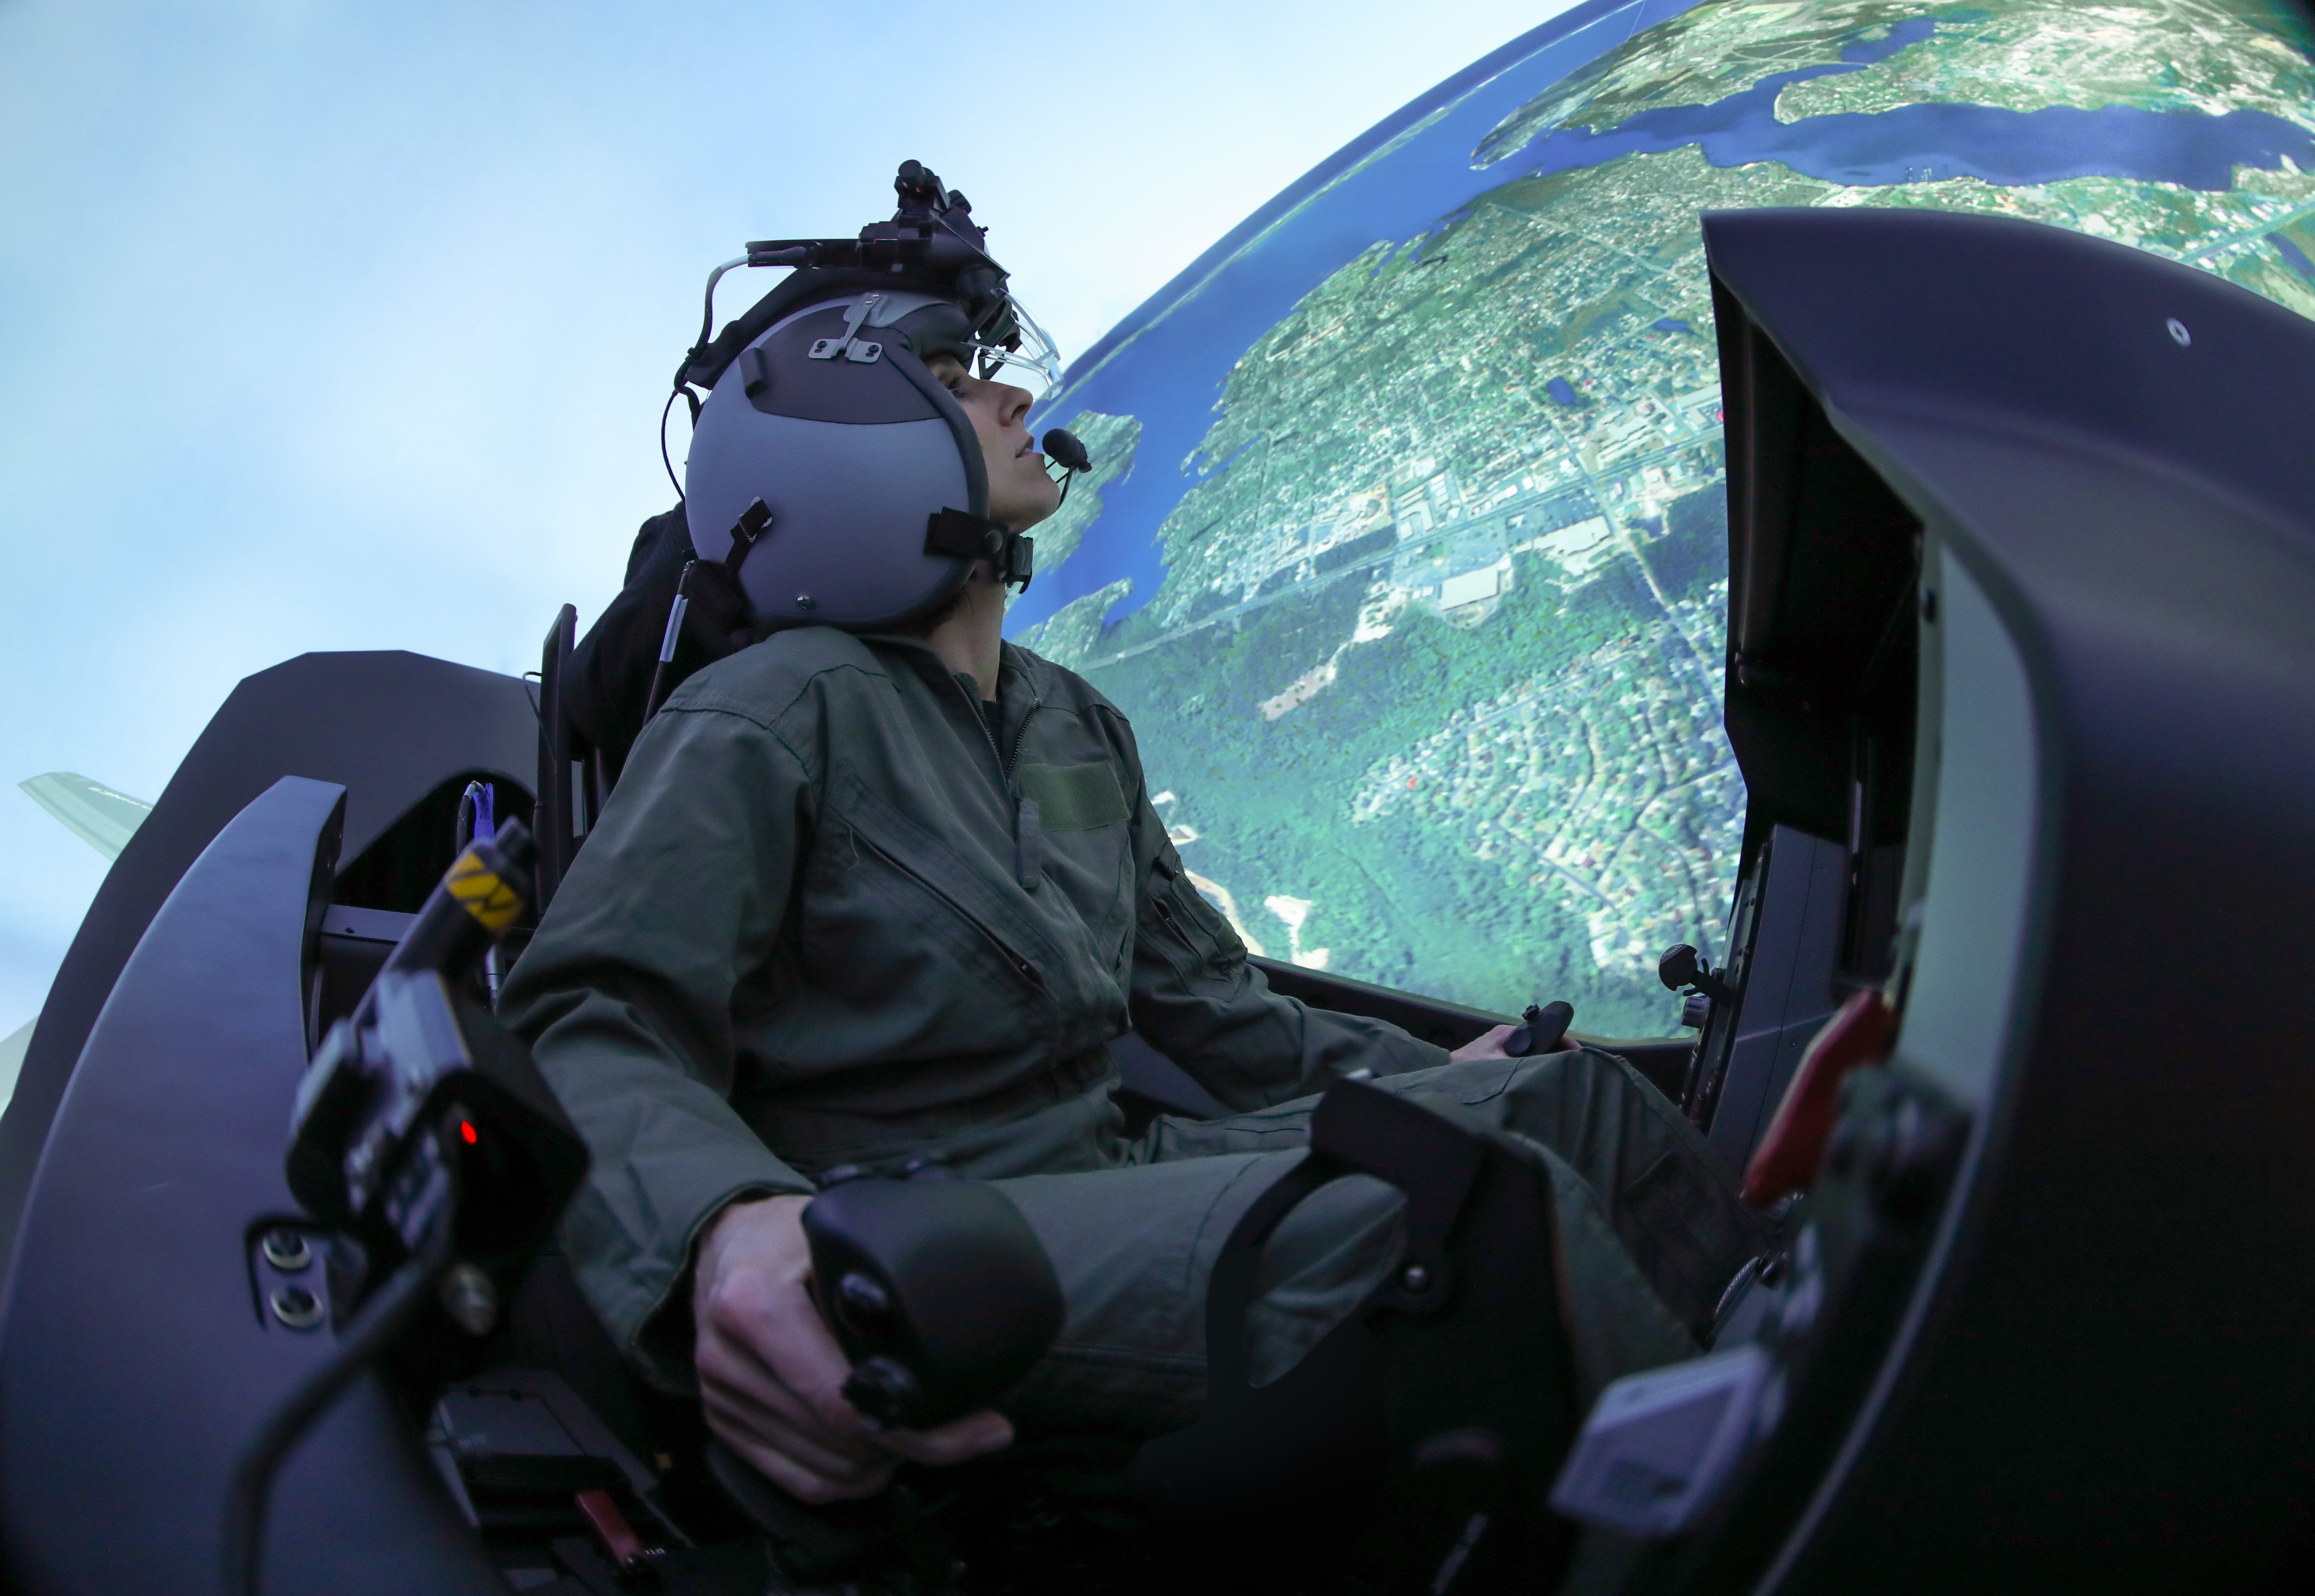 An F-35 pilot trains in a simulator. (Lockheed Martin)